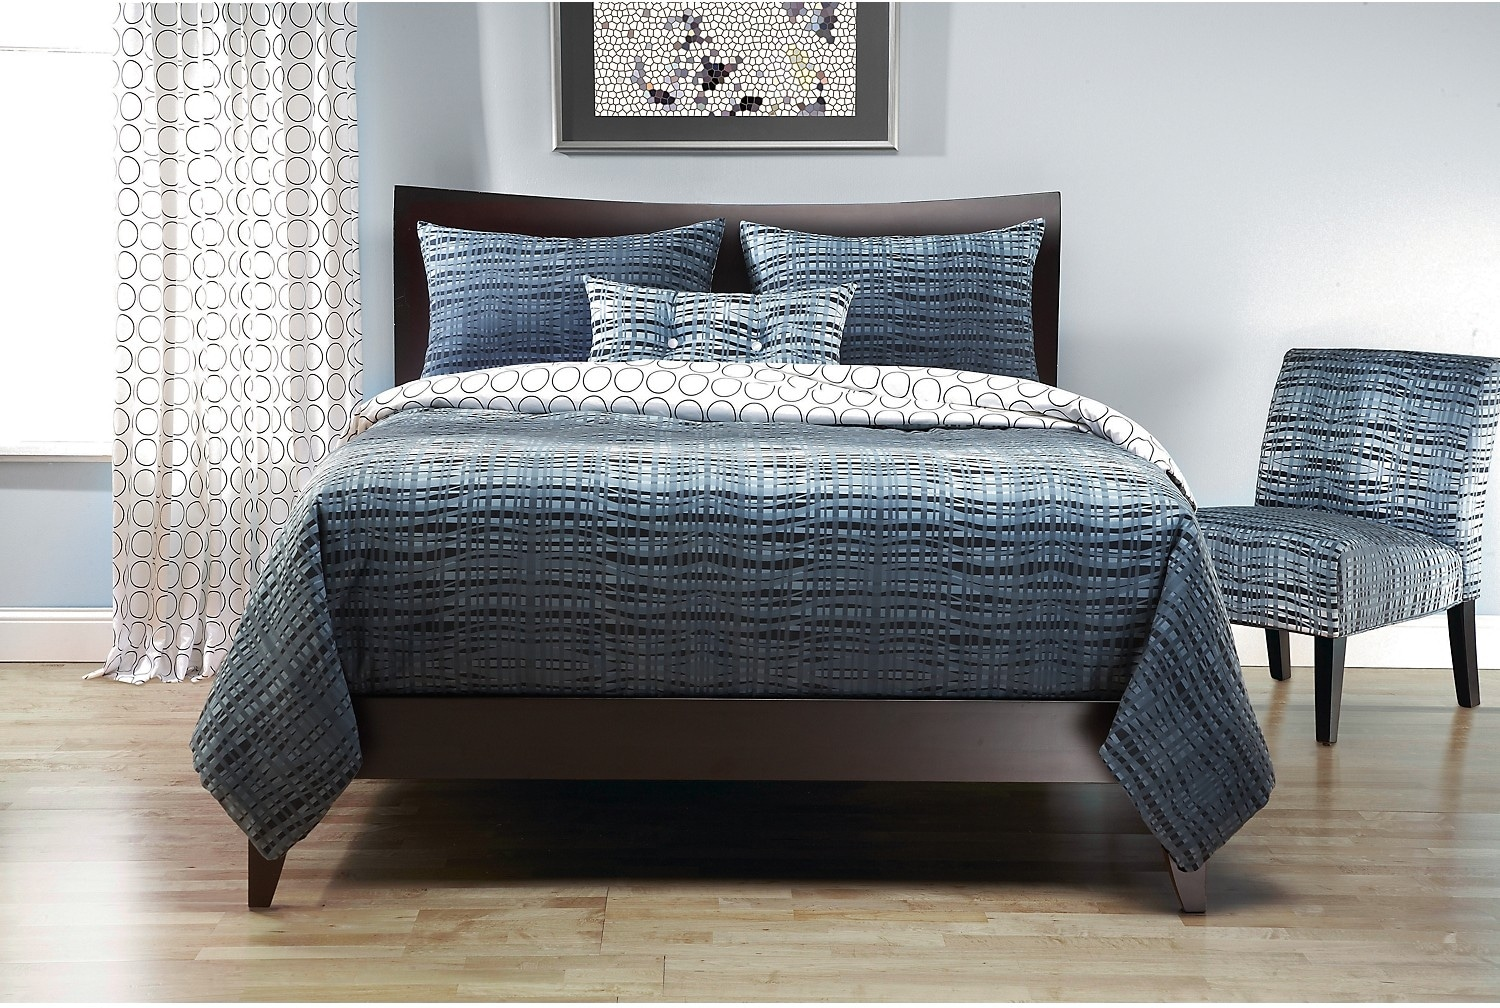 Interweave Reversible 4 Piece King Duvet Cover Set